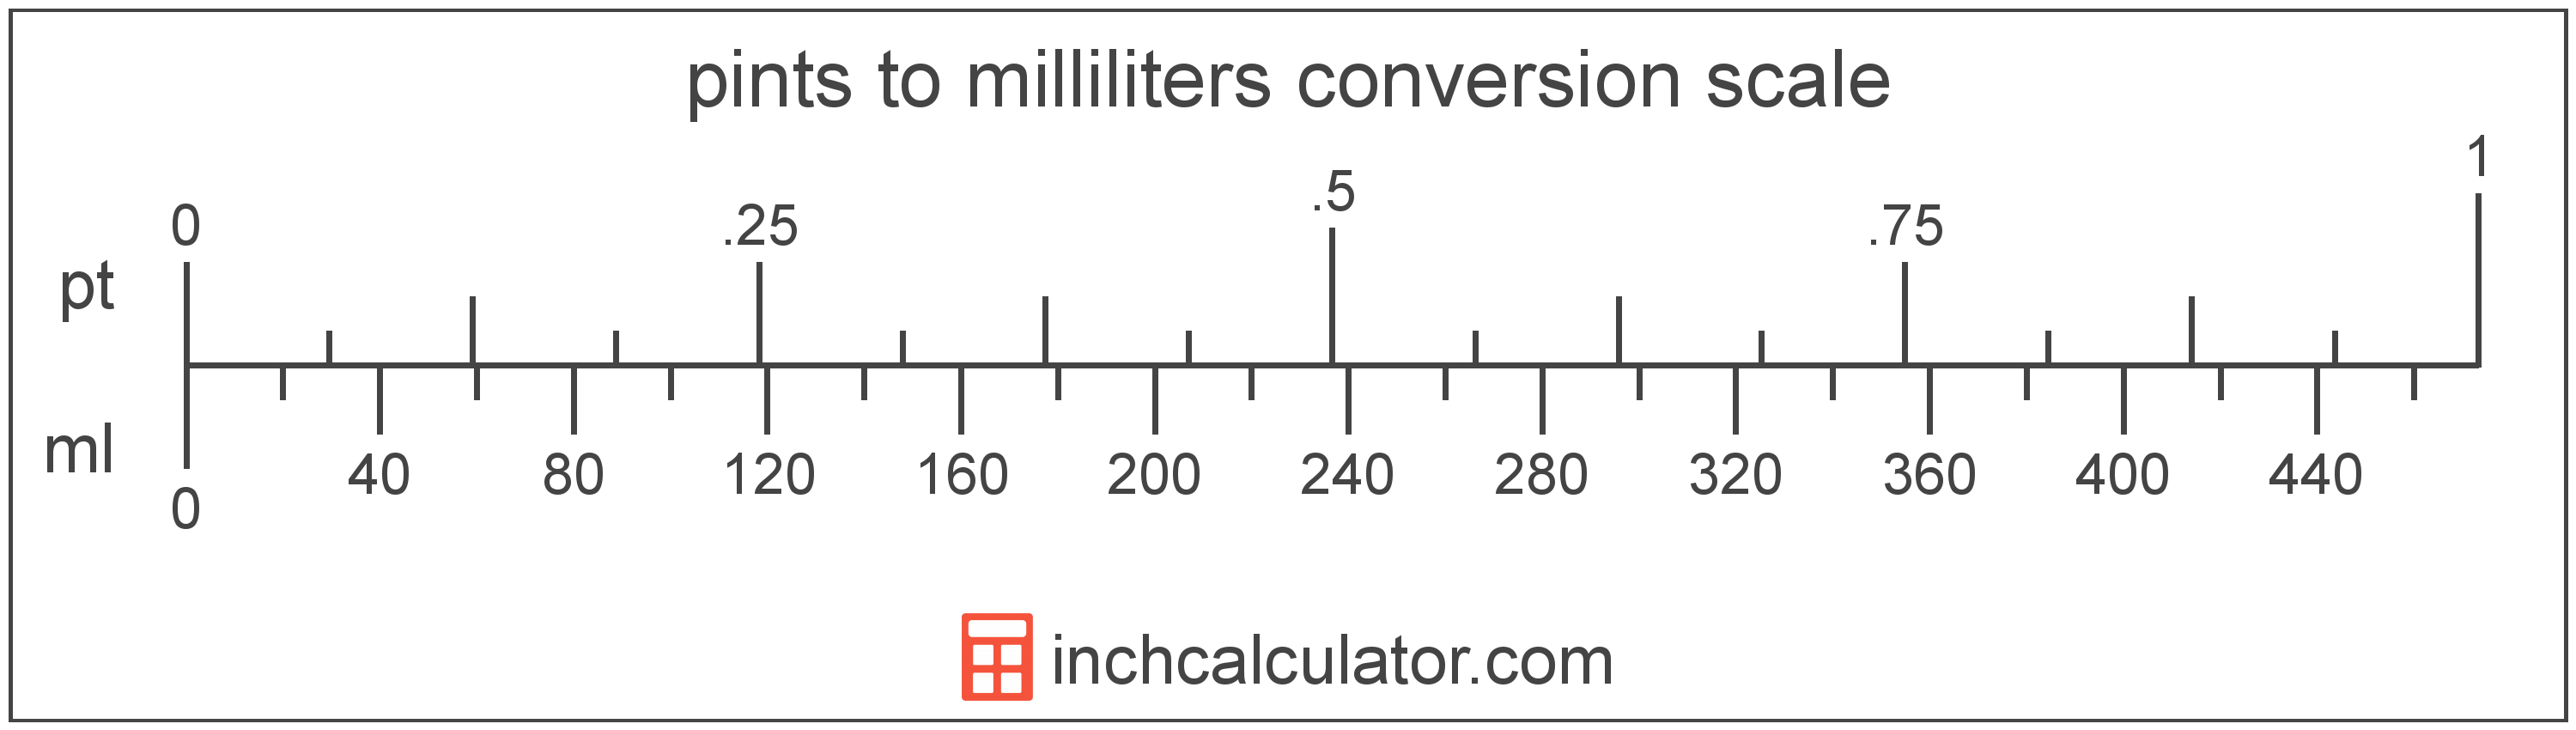 conversion scale showing milliliters and equivalent pints volume values